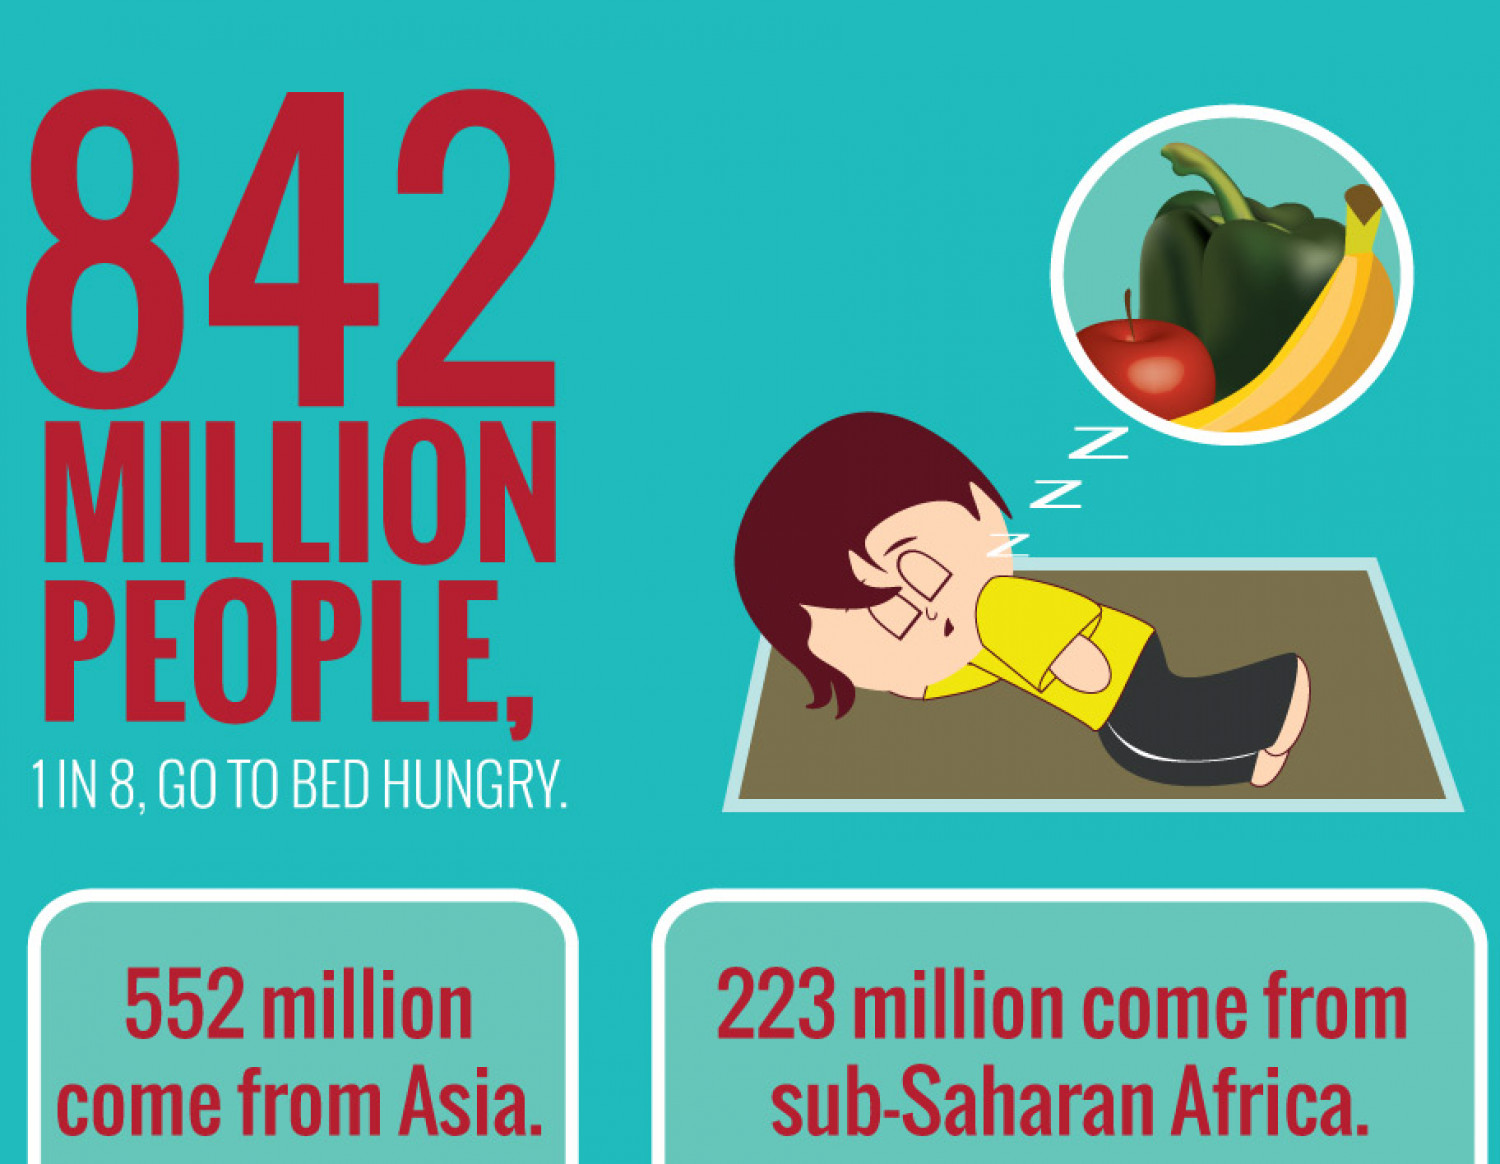 Hunger and Poverty - By the Numbers Infographic